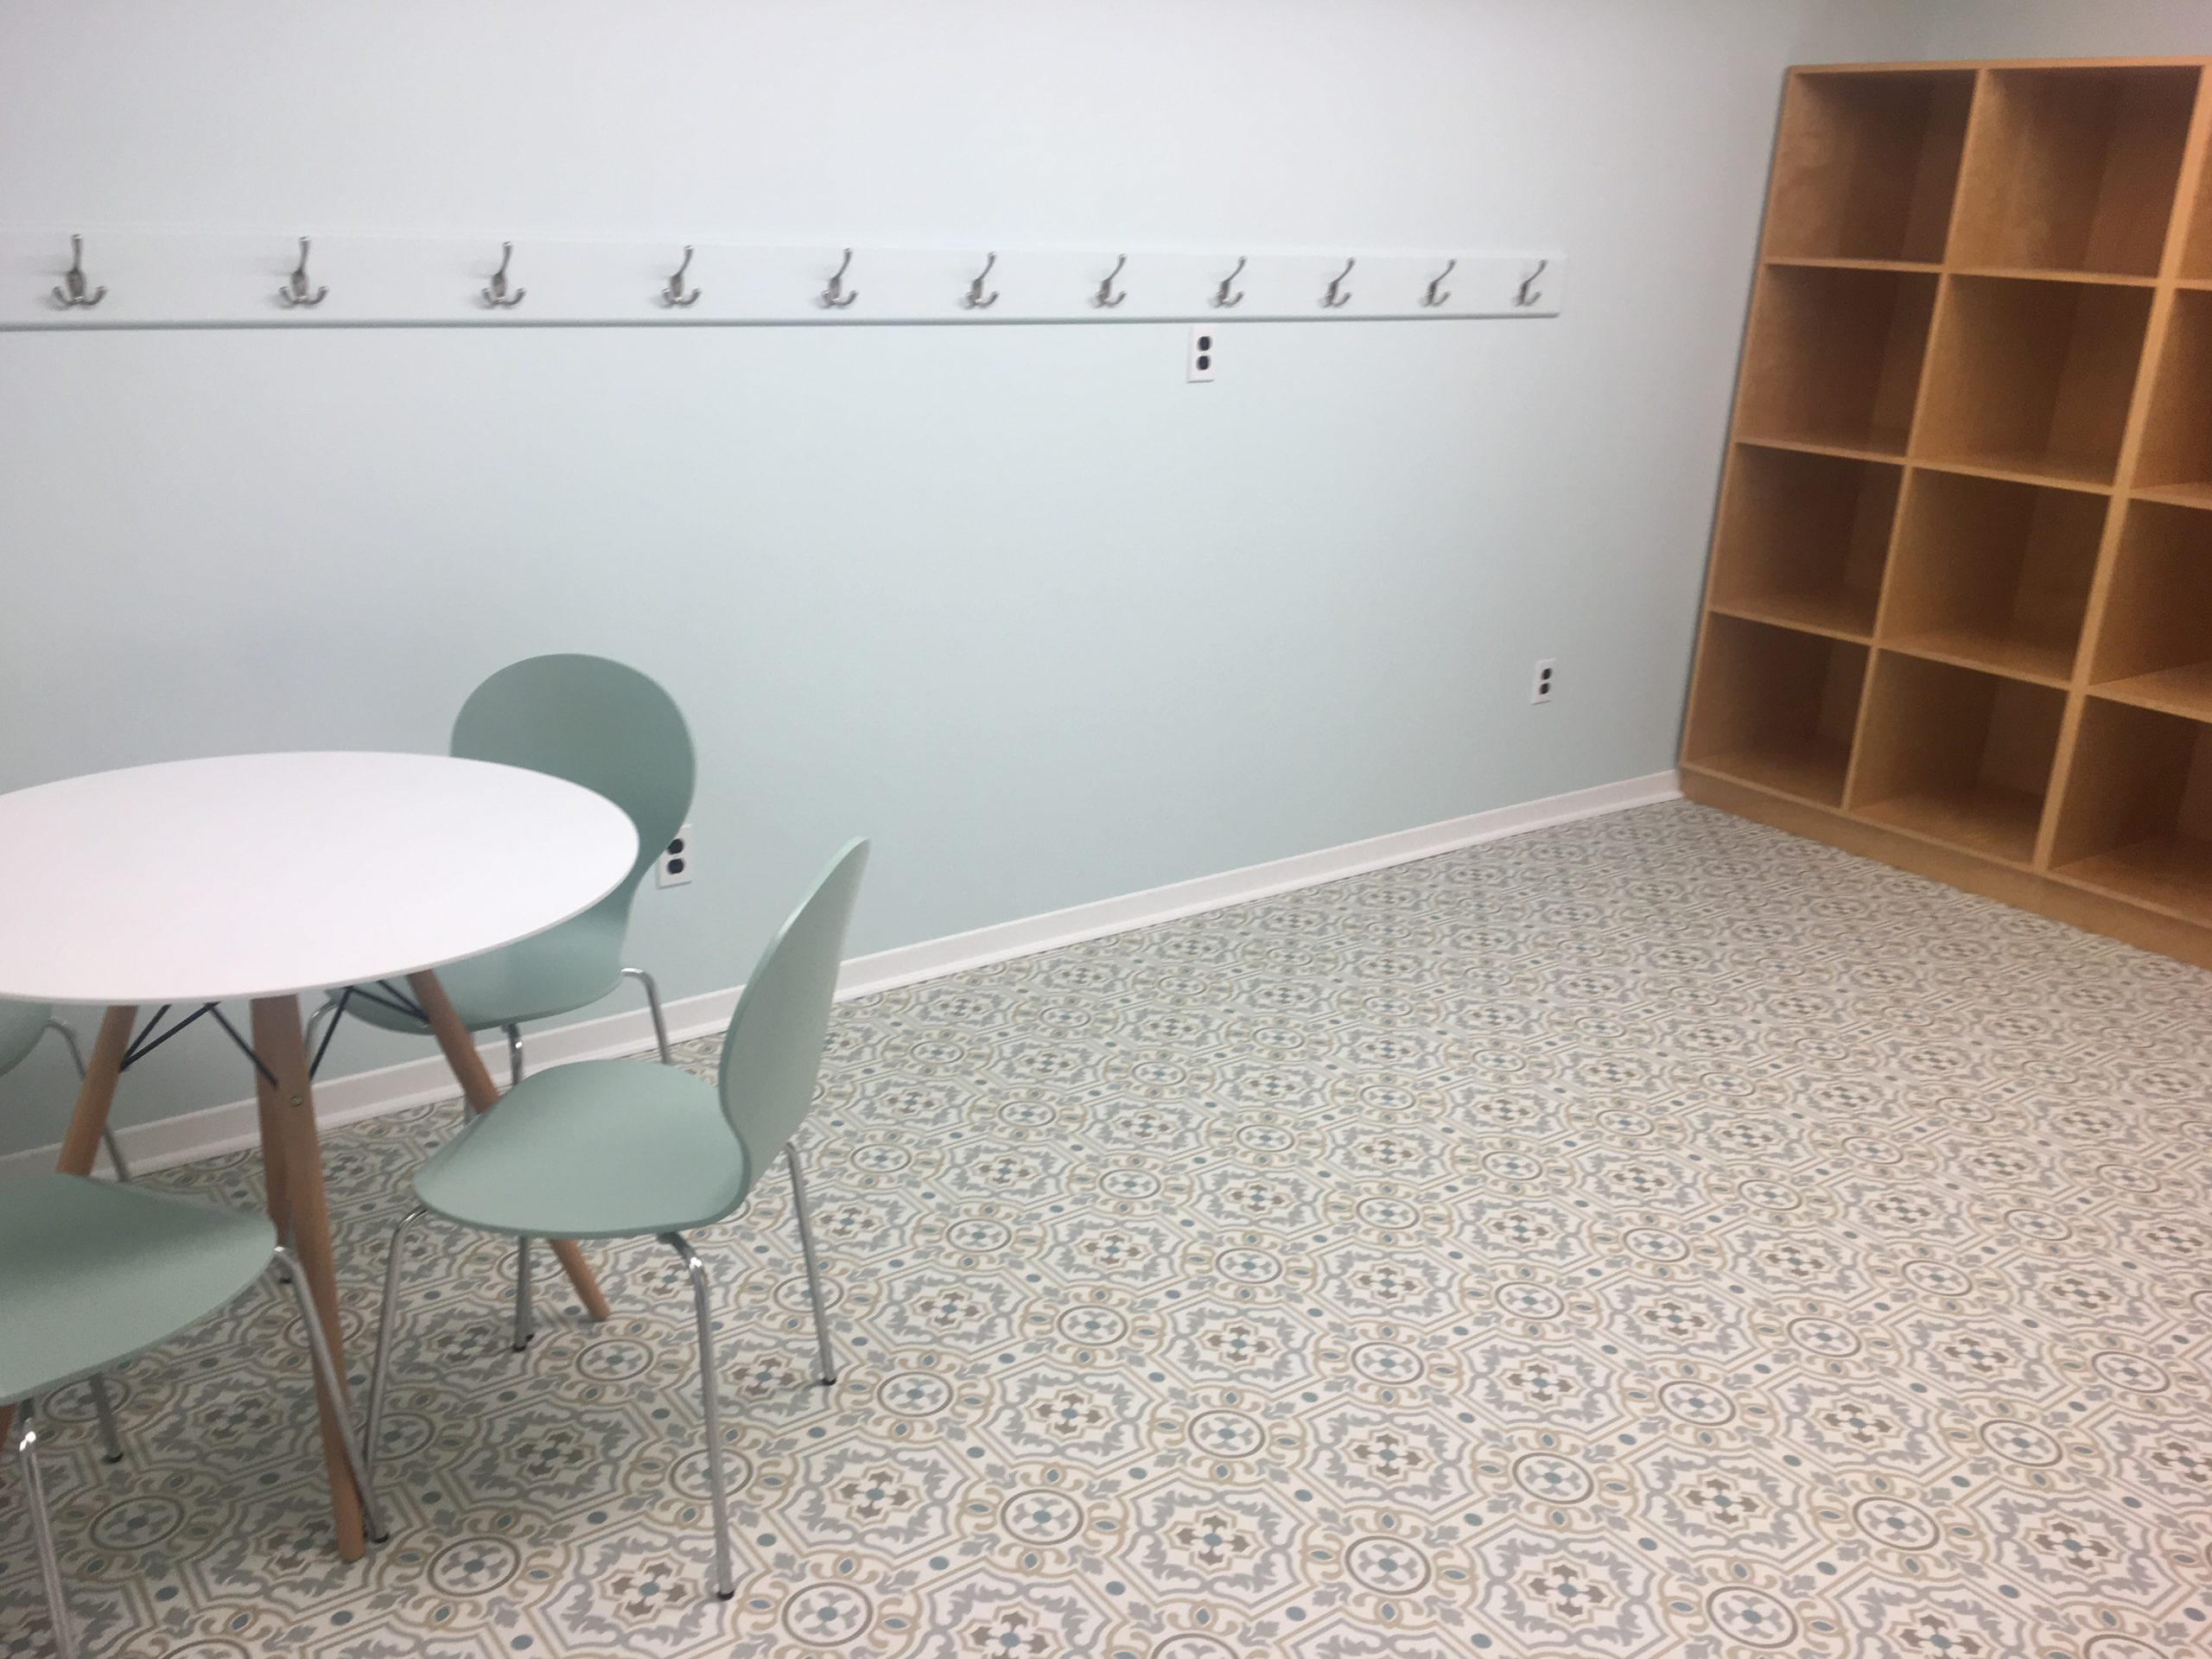 table and chairs and wooden cubbies